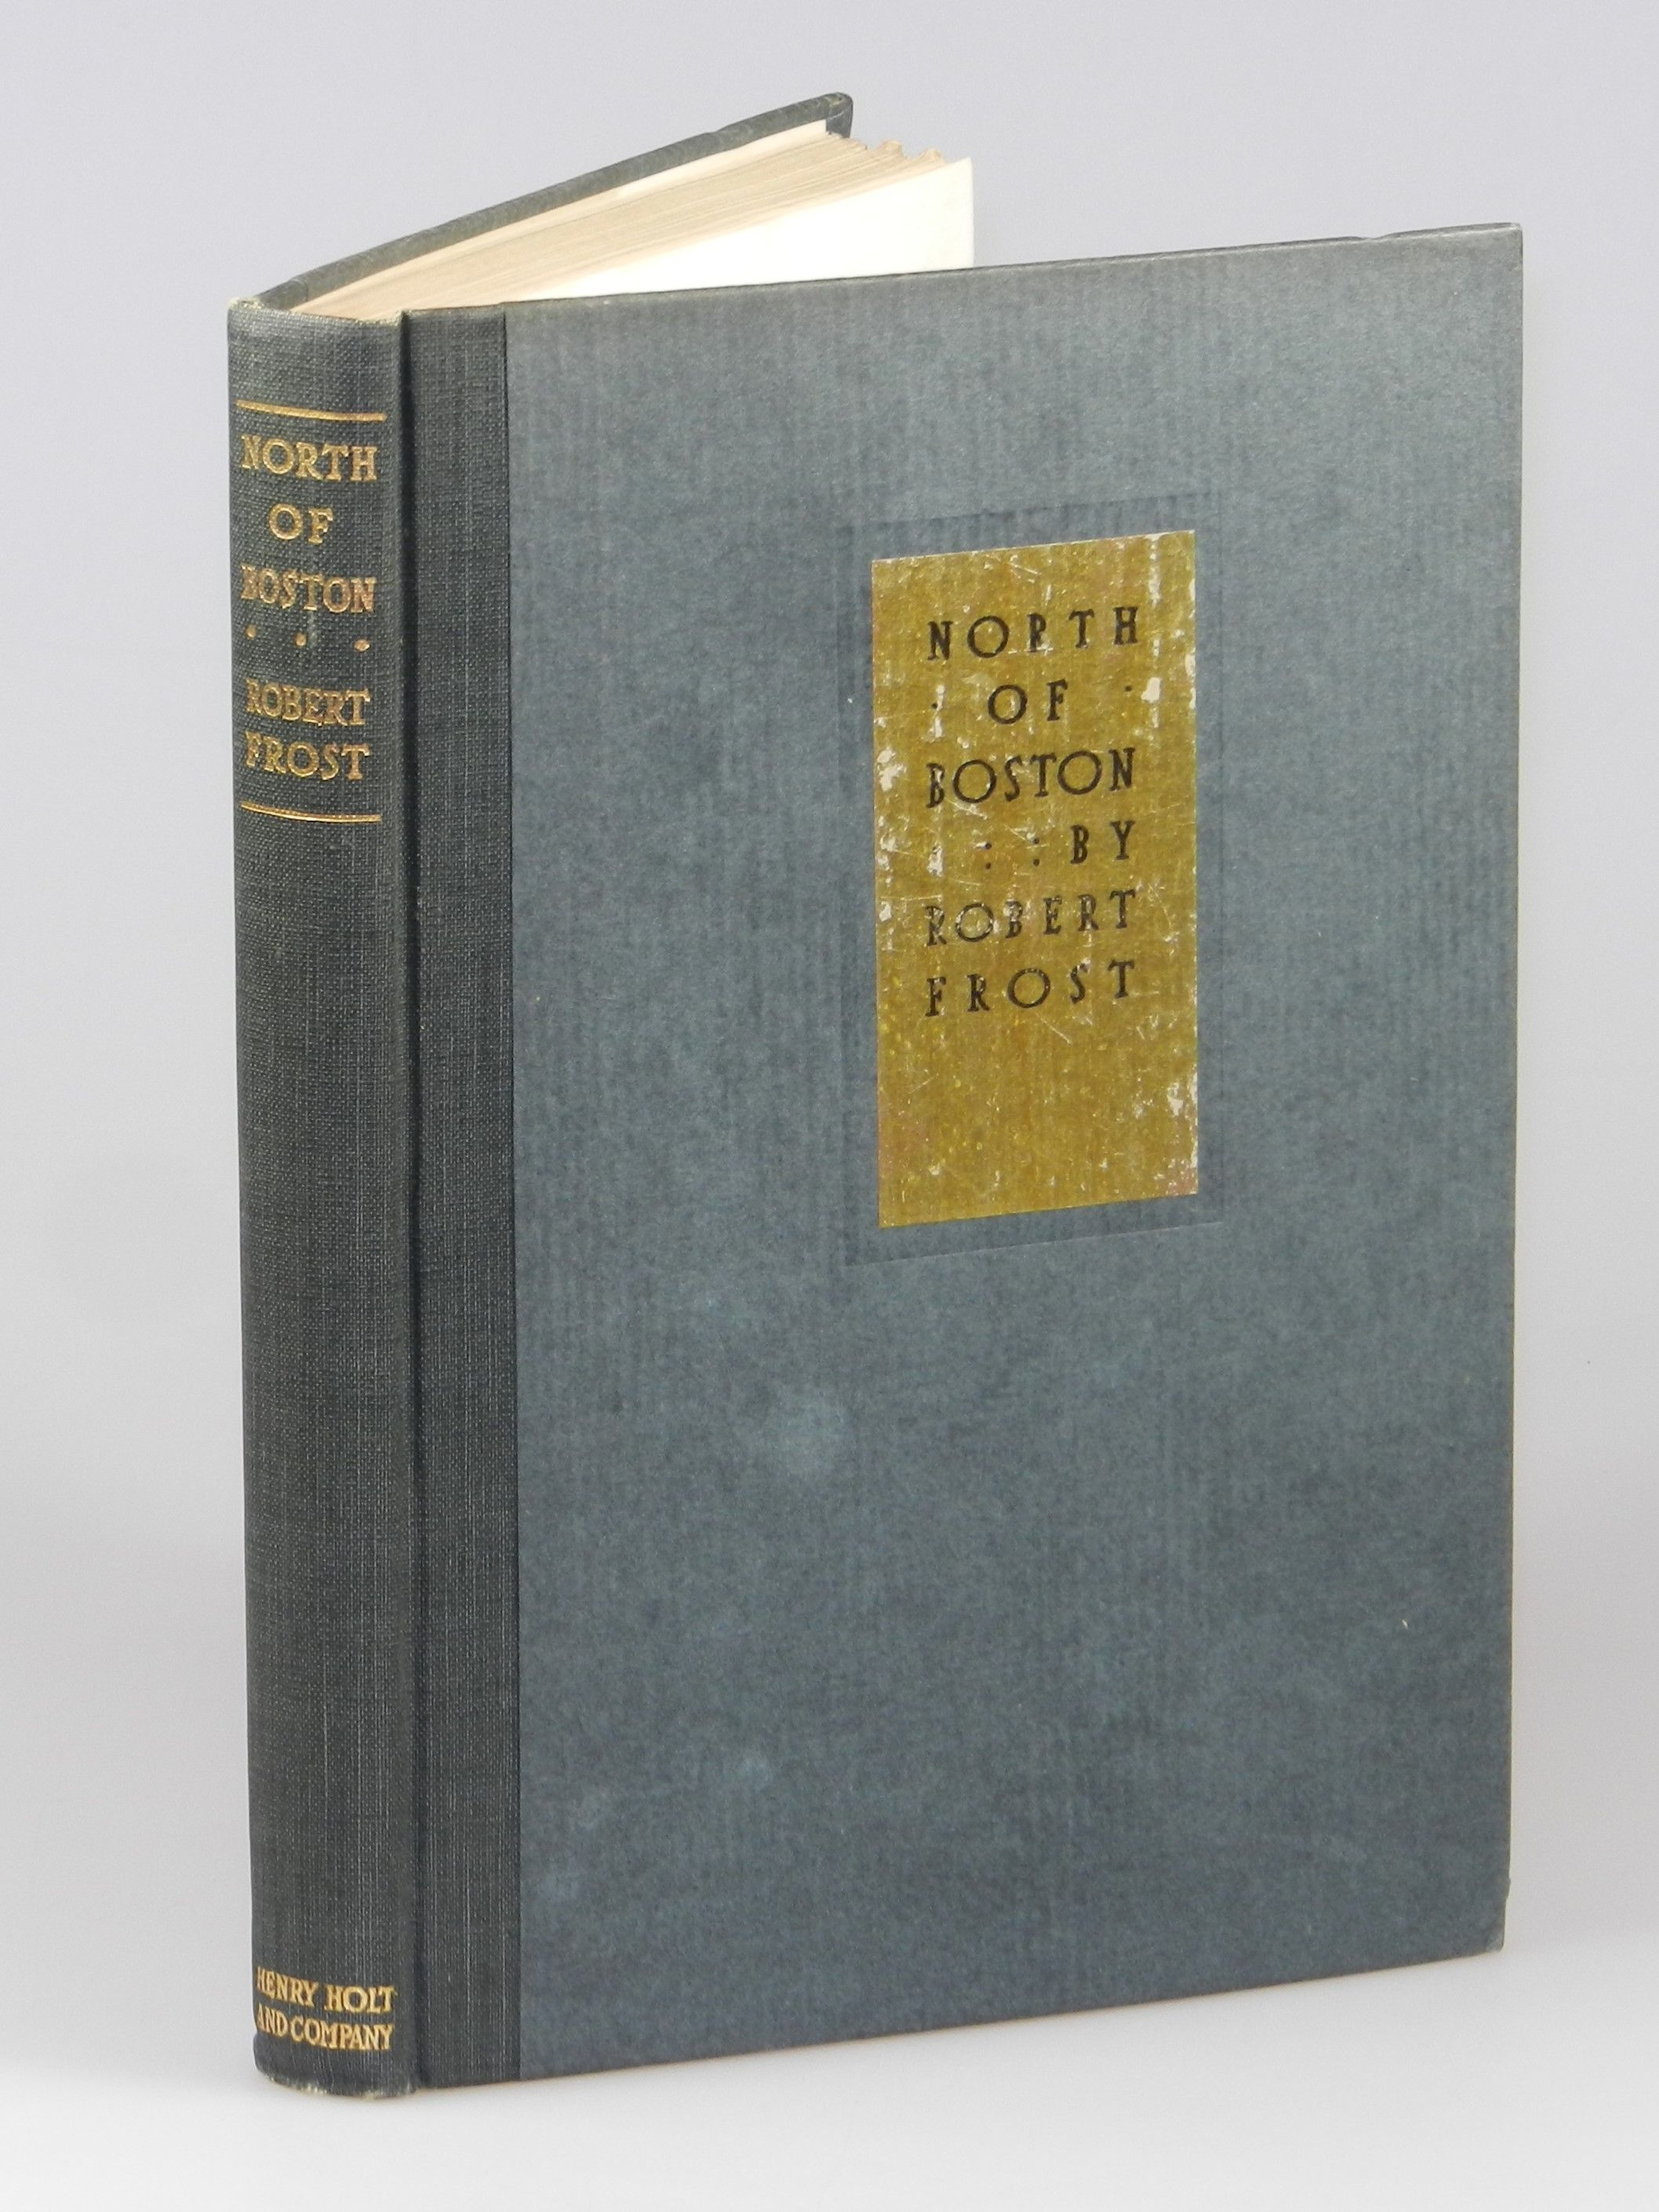 a review of robert frosts second book north of boston Like his first book, a boy's will (1913), robert frost's second, north of boston, was first published in englanddespite that irony, it was, and remains, the book that connects the name.